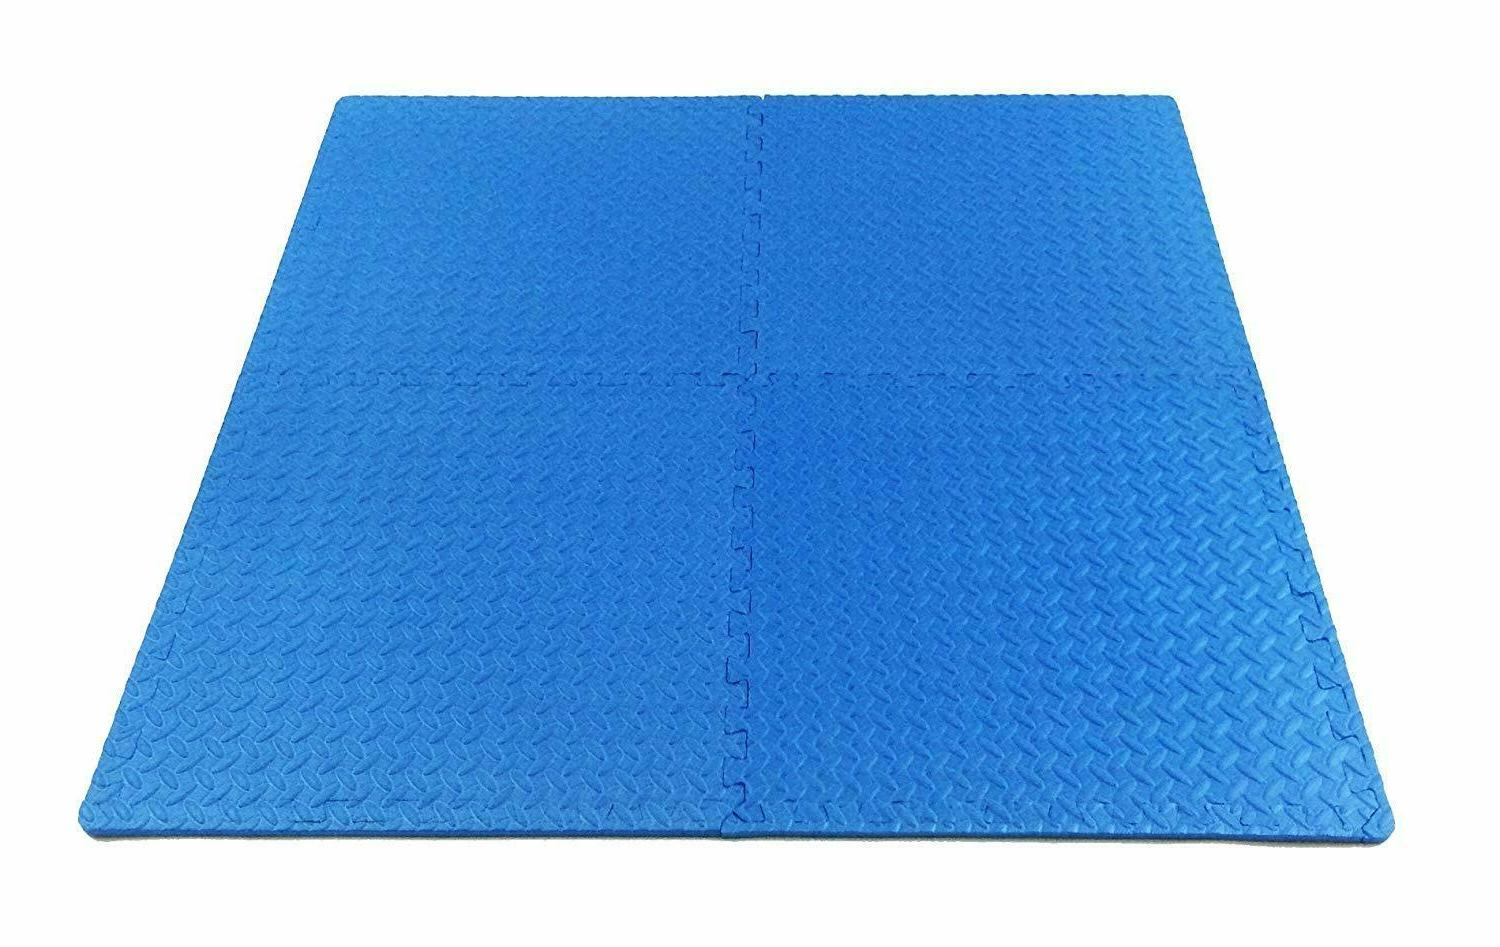 Interlocking Rubber Foam Gym Fitness Exercise Floor Mat NEW SQFt